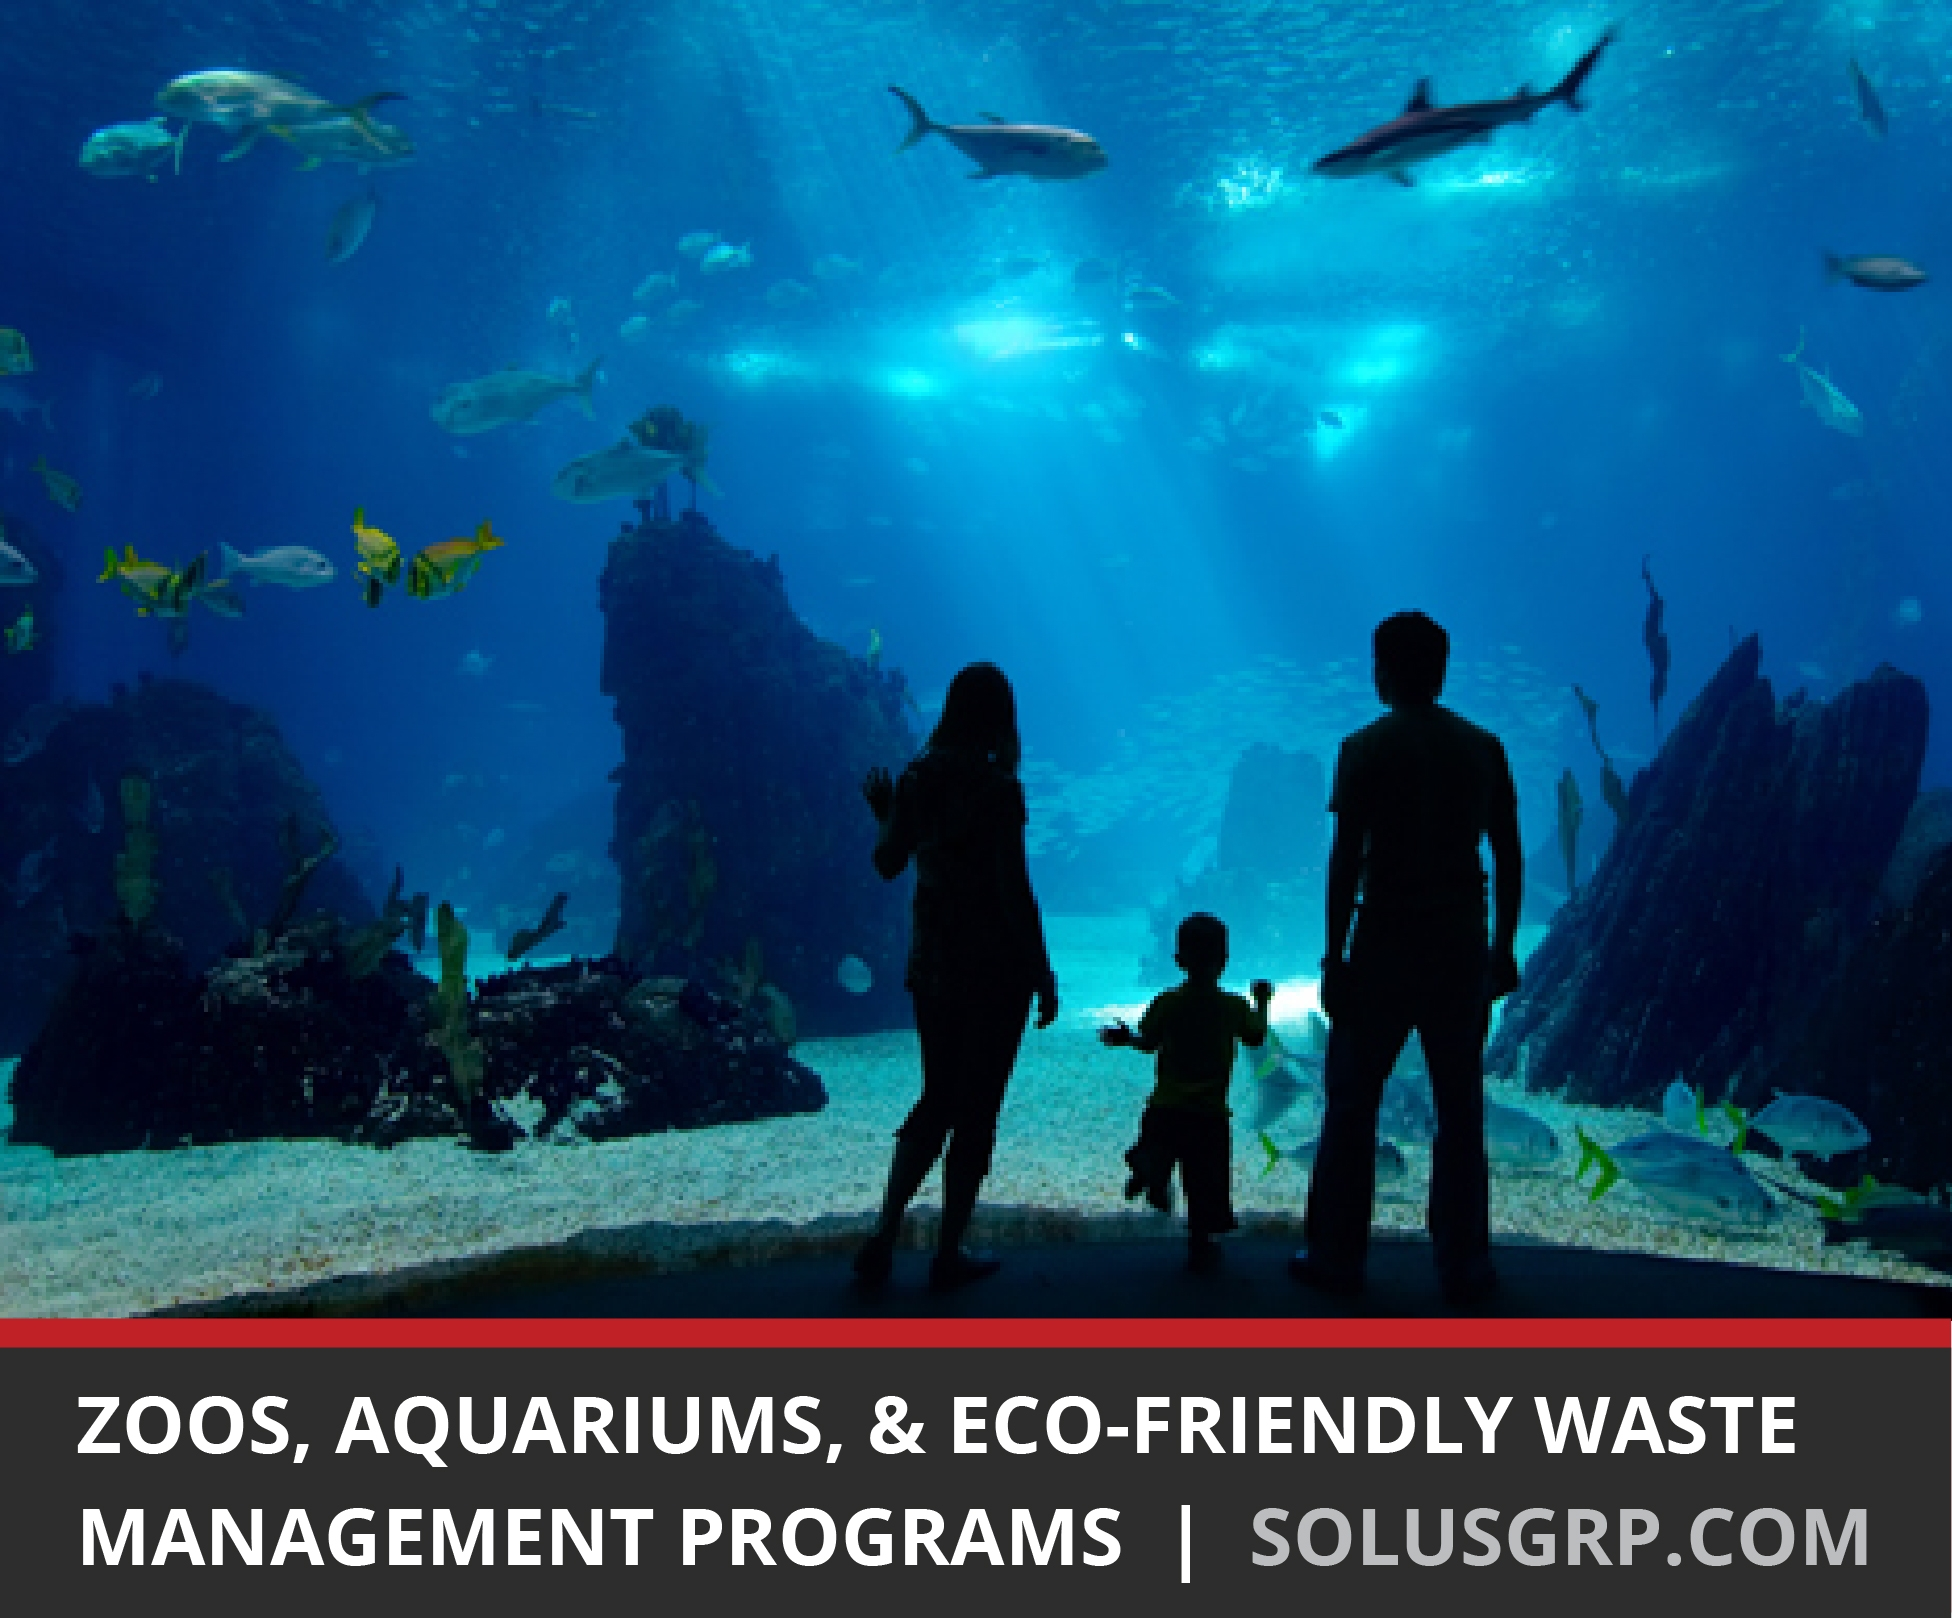 Eco-Friendly Waste Management Programs at Zoos & Aquariums